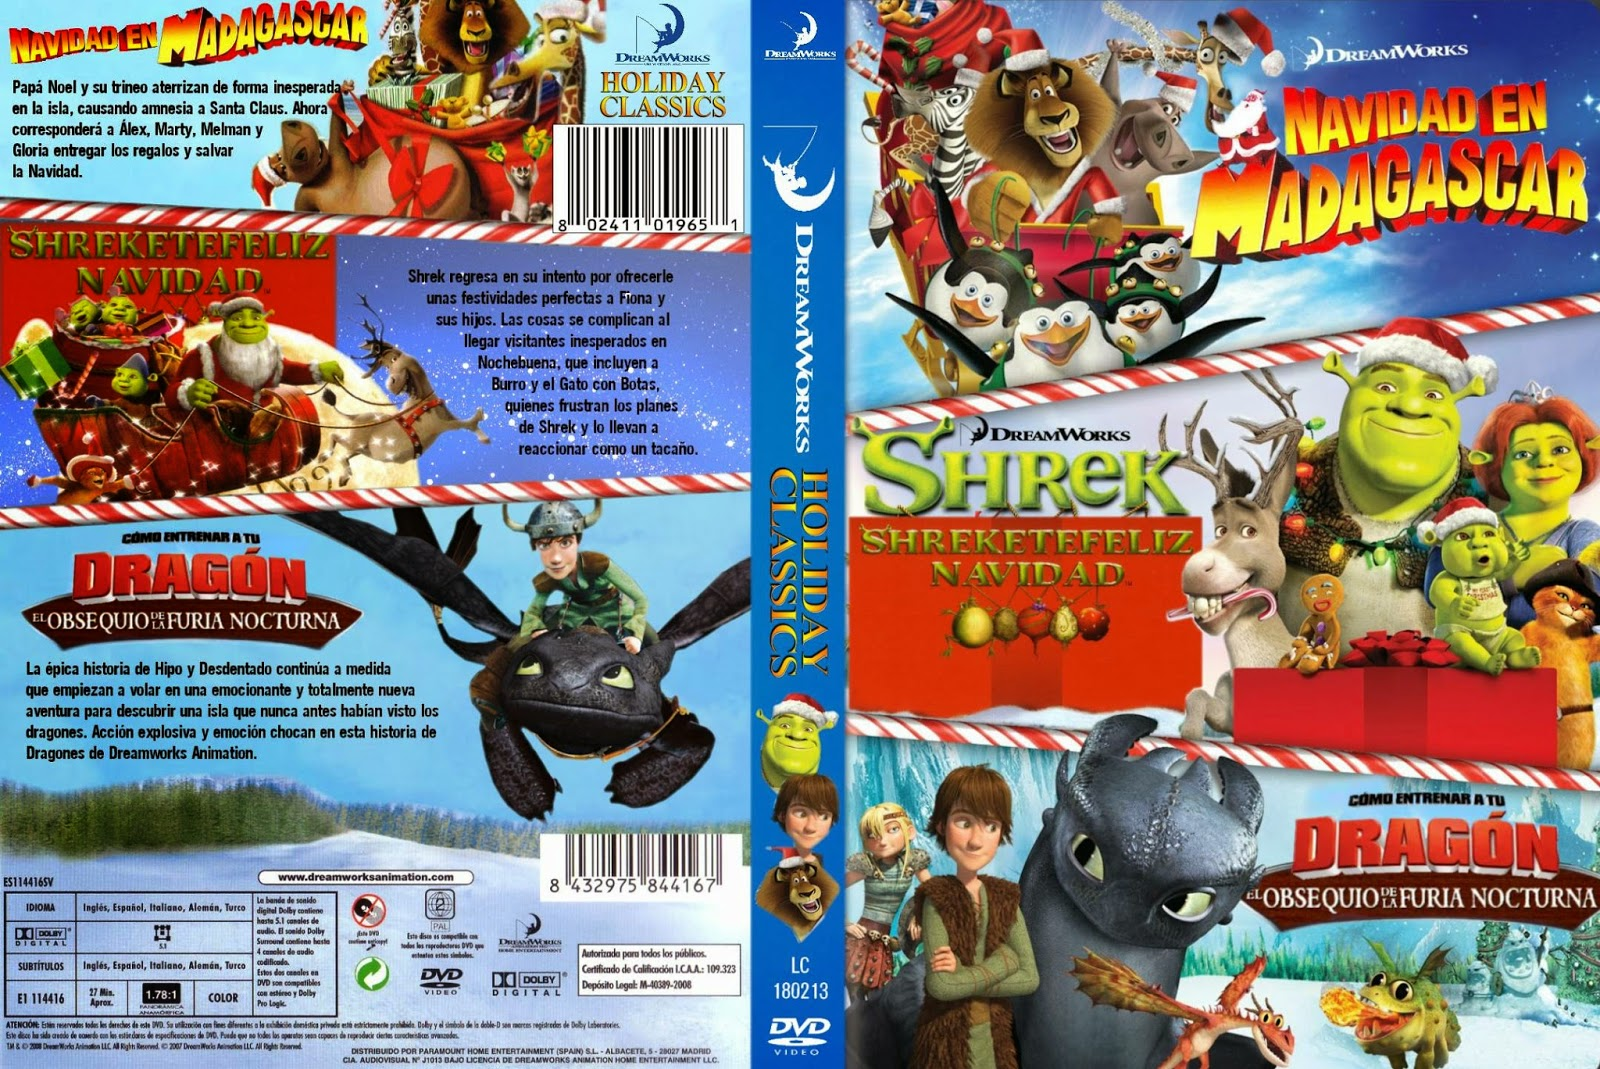 Holliday Classics [MERRY-SHREK-DRAGON] DVD FULL